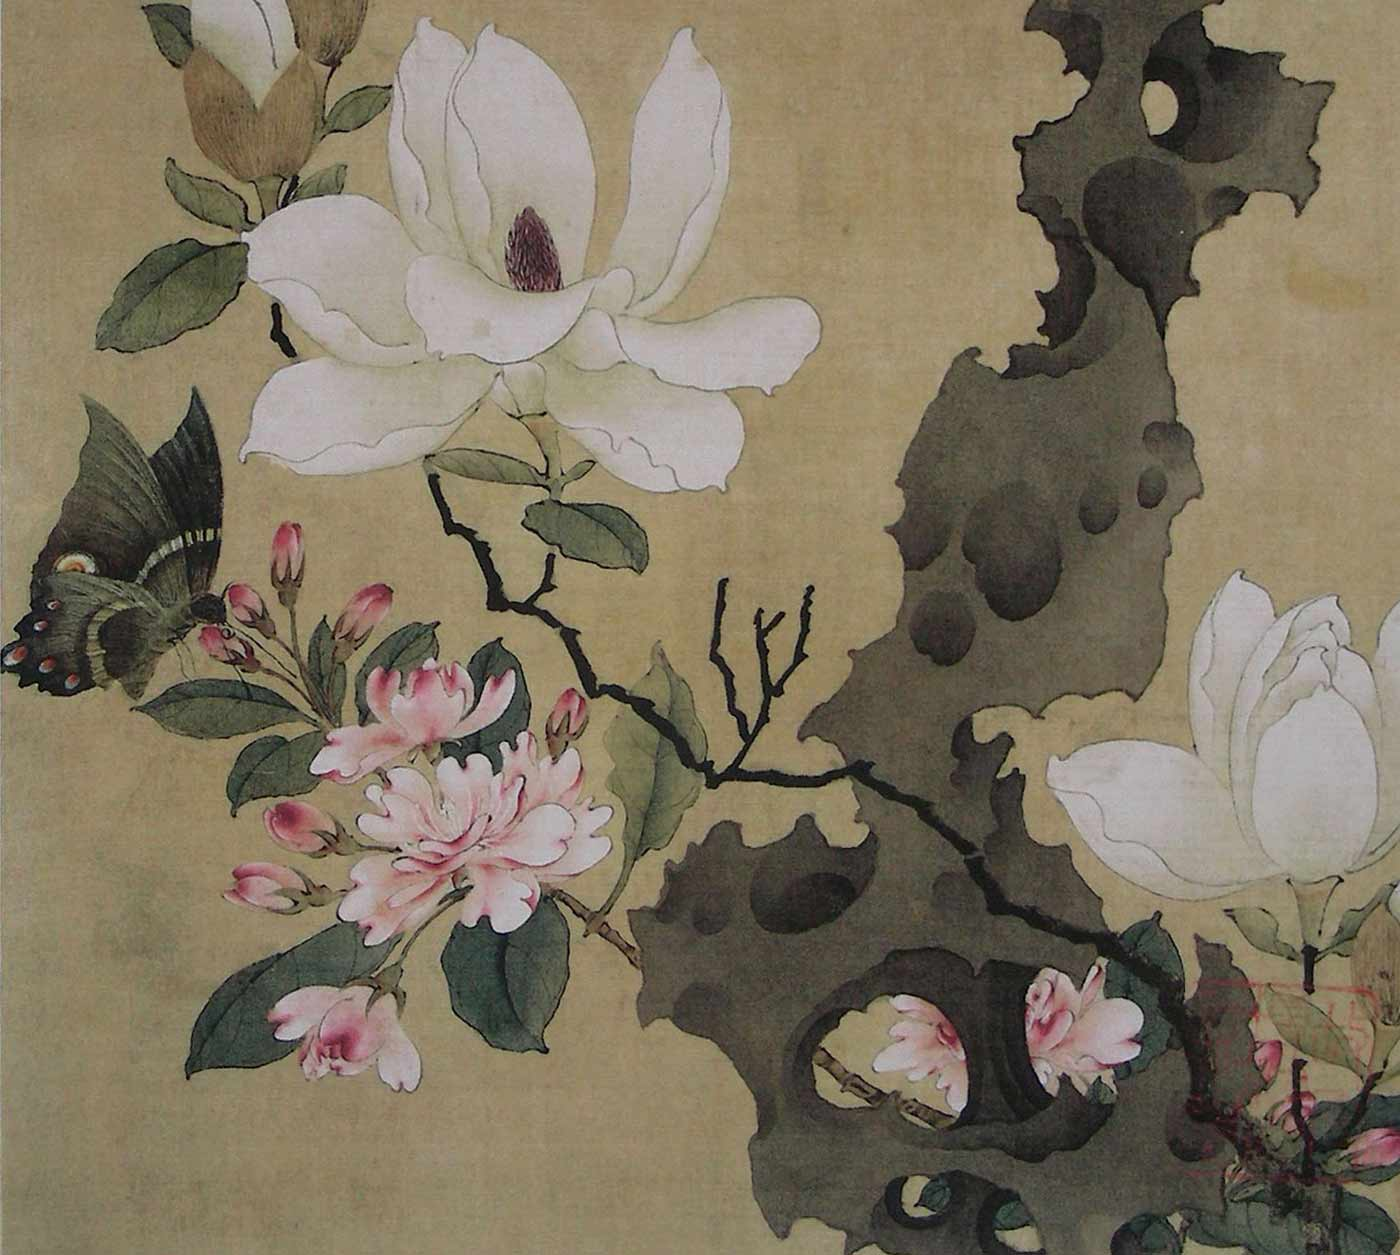 Painting by the Chinese Ming Dynasty artist Chen Hongshou.